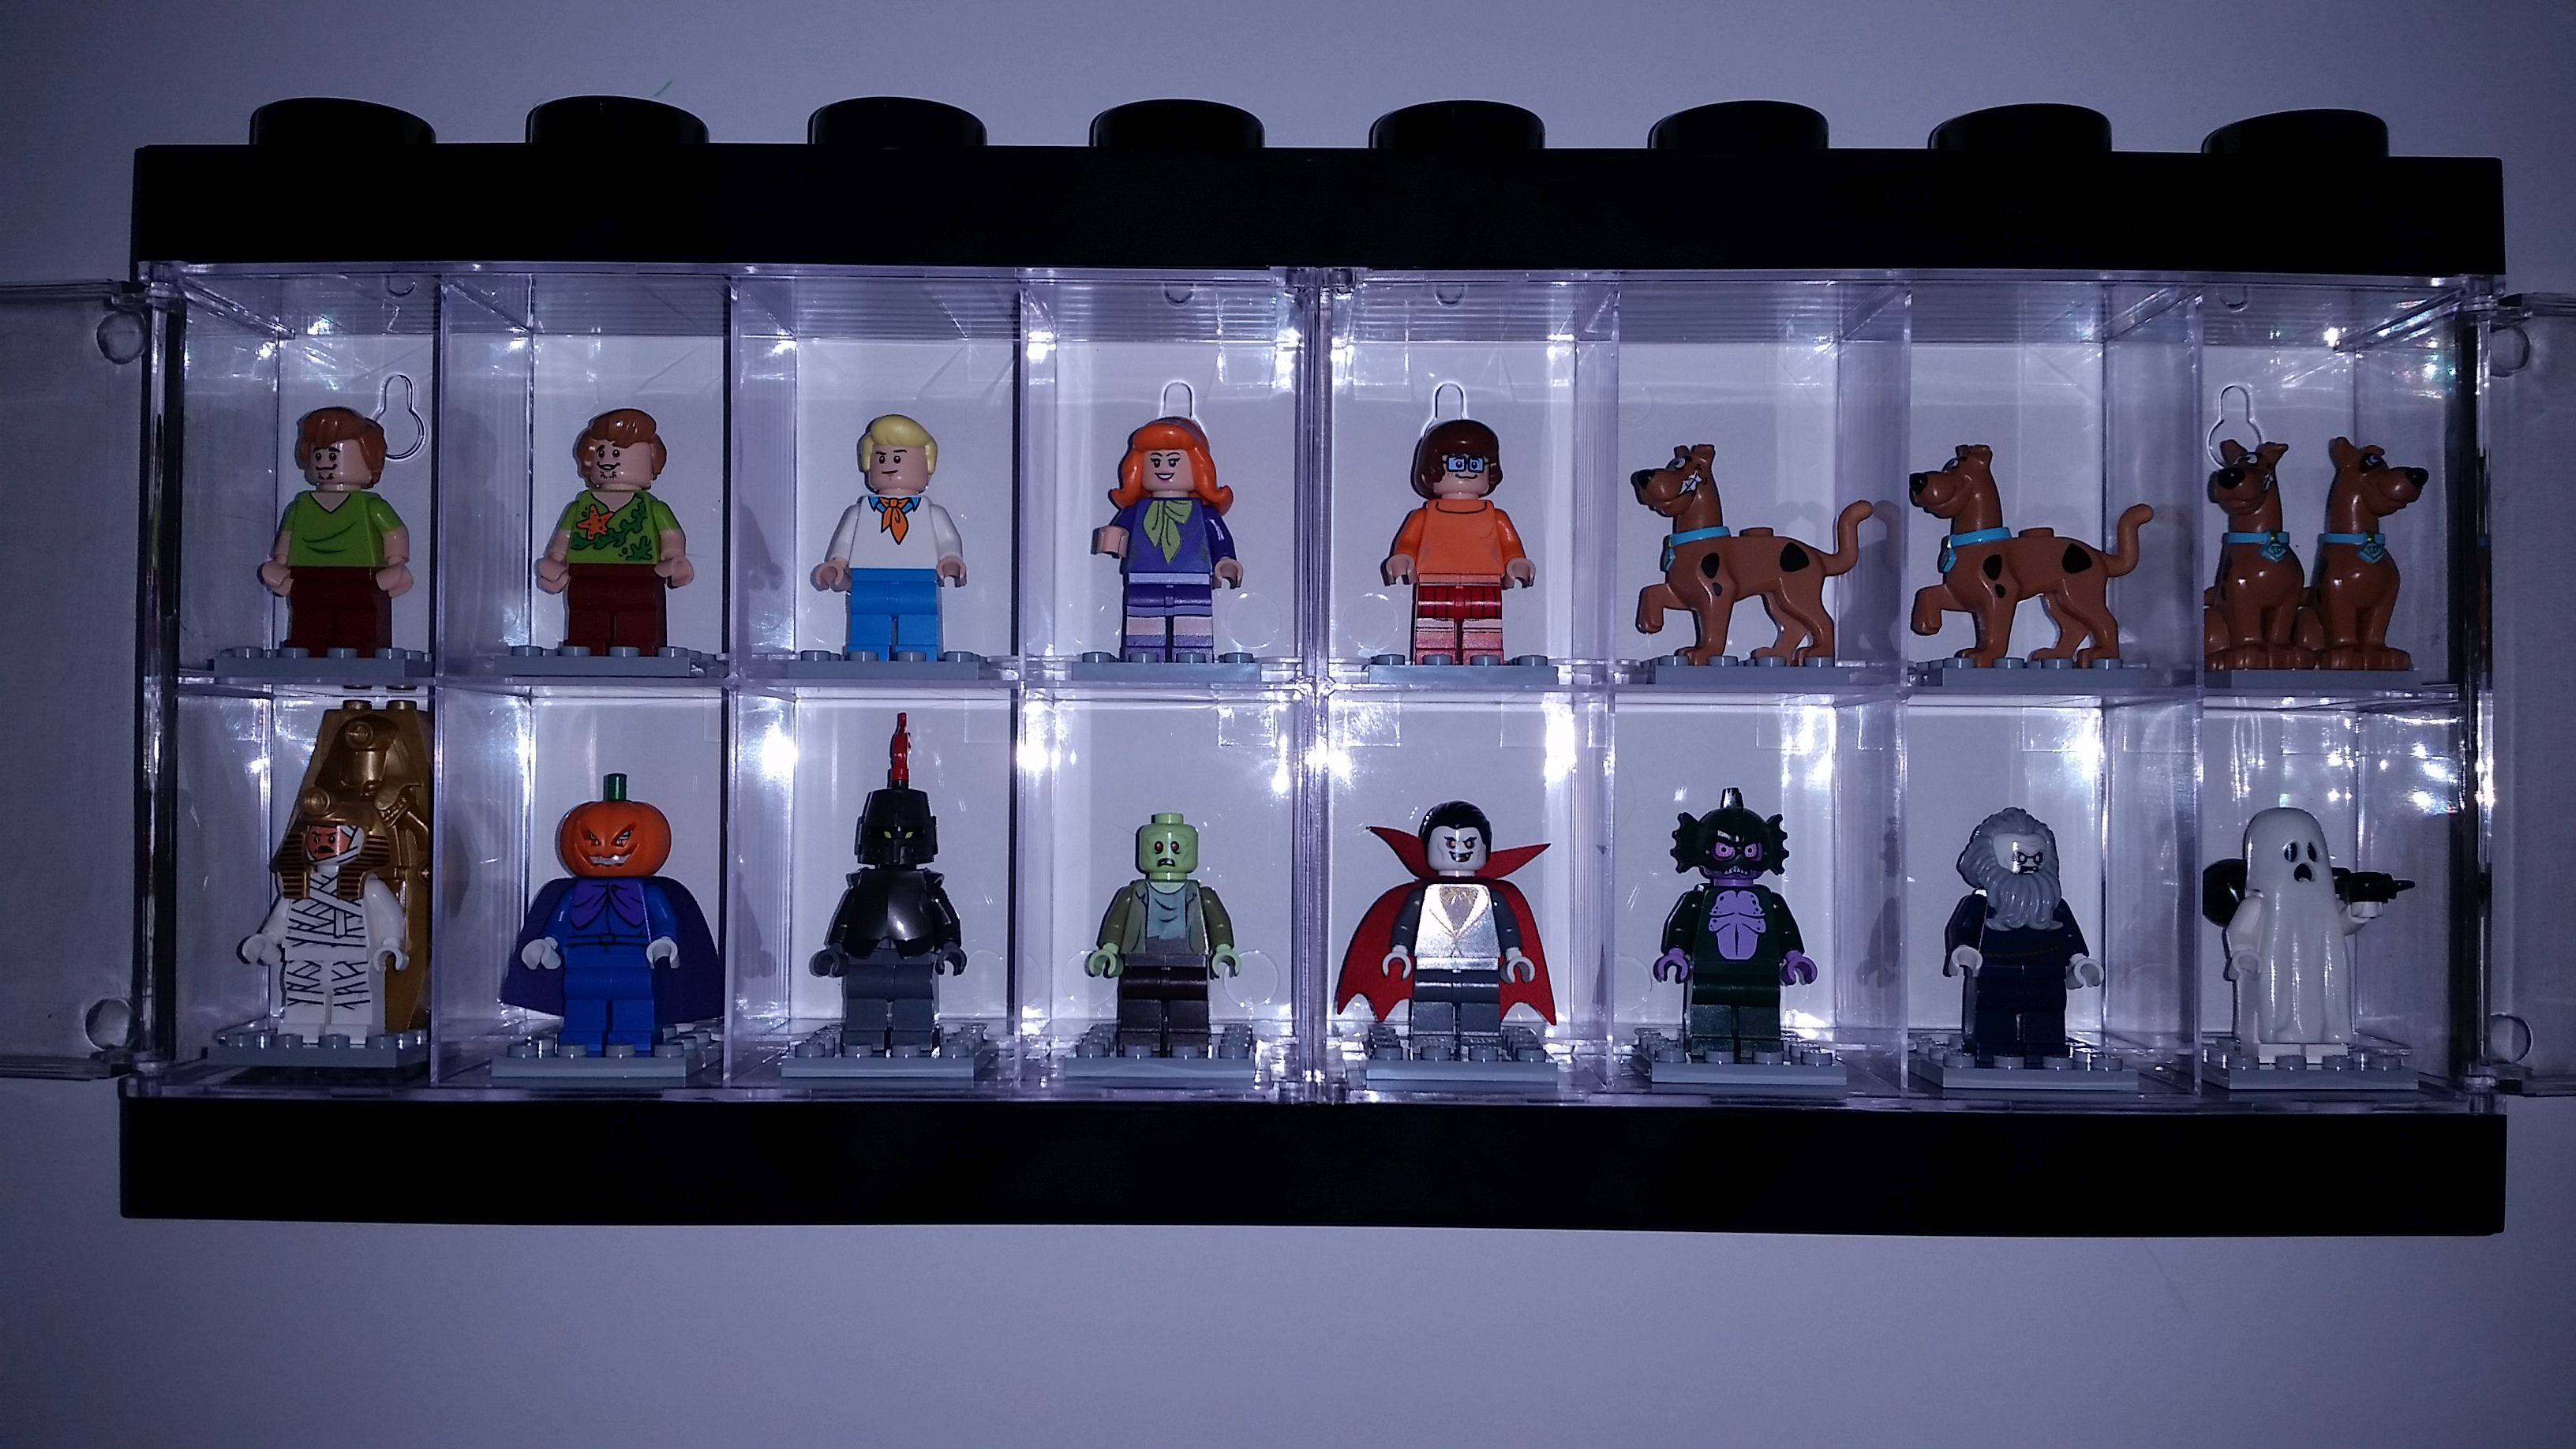 SDCC Lego Minifigure Acrylic Display Case